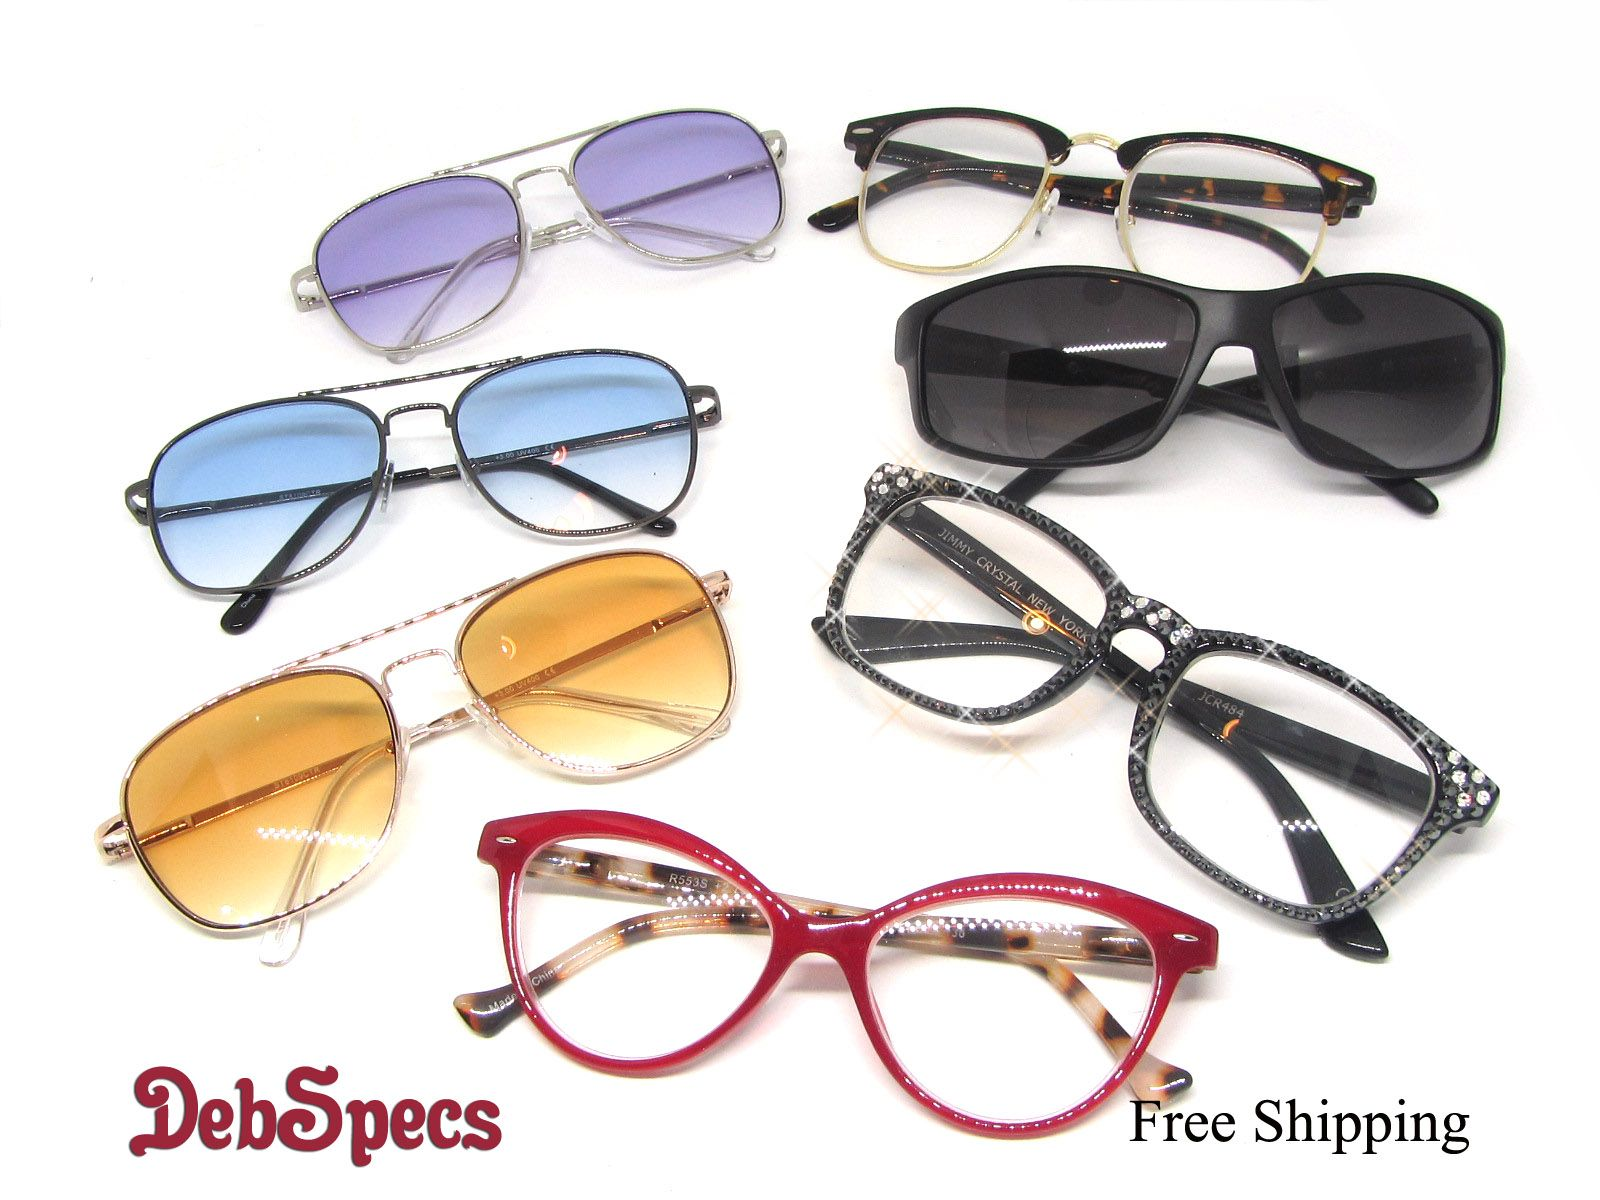 1cda3d48baa Keep cool this summer with cool DebSpecs reading glass styles.   readingGlasses  trendyReaderStyles  tintedUVReaders  purpleReadingGlasses  ...